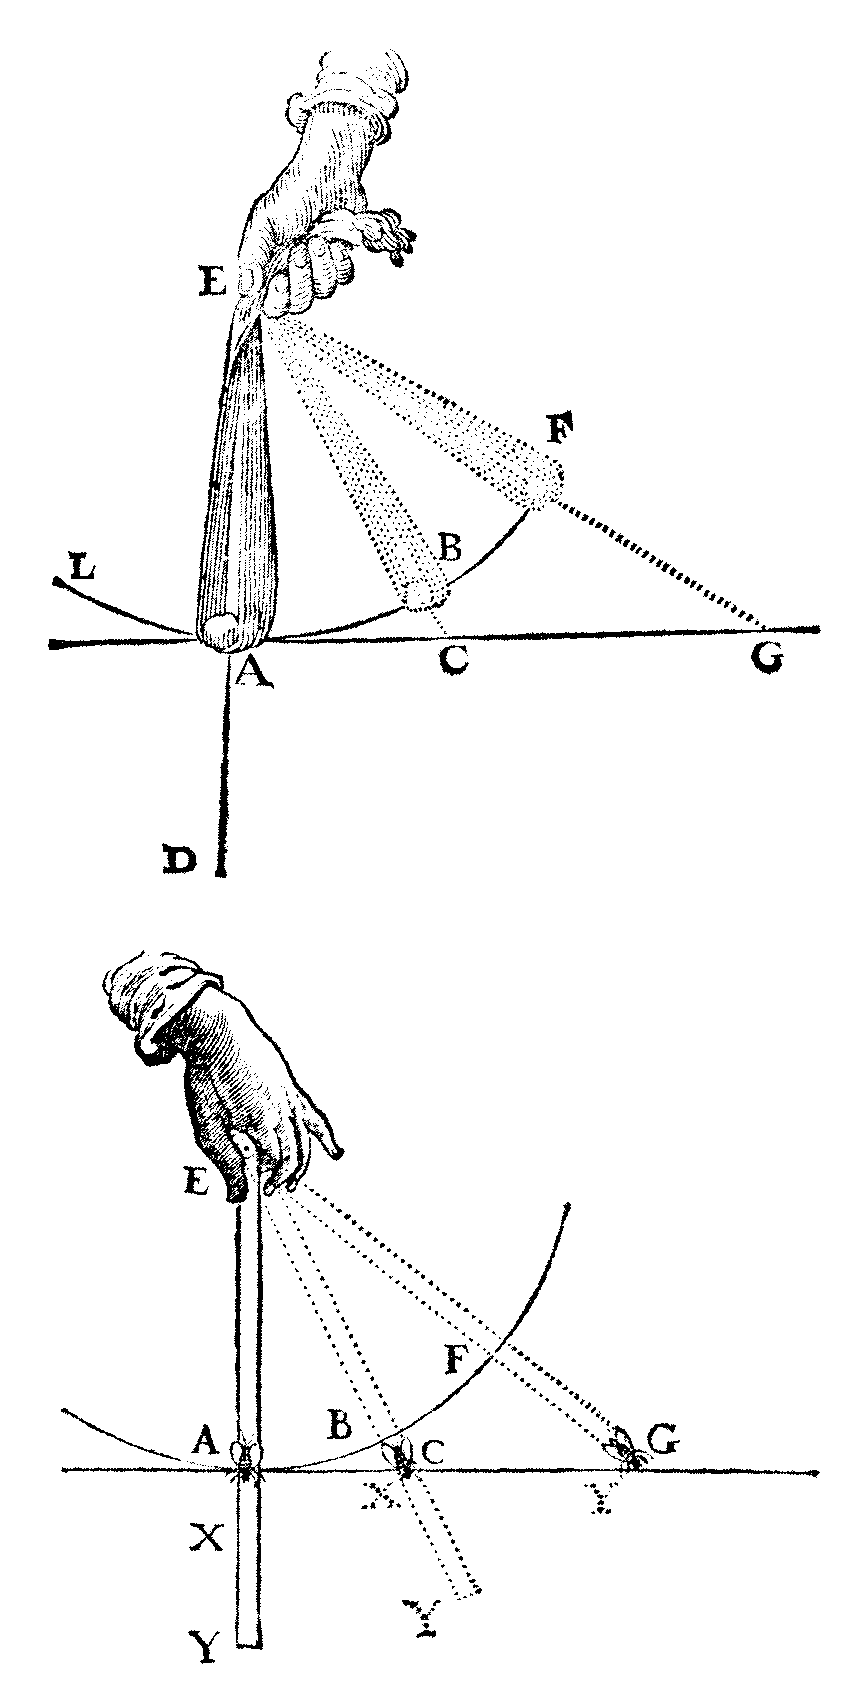 https://upload.wikimedia.org/wikipedia/commons/9/96/Descartes_Principles_of_Philosophy_1.png